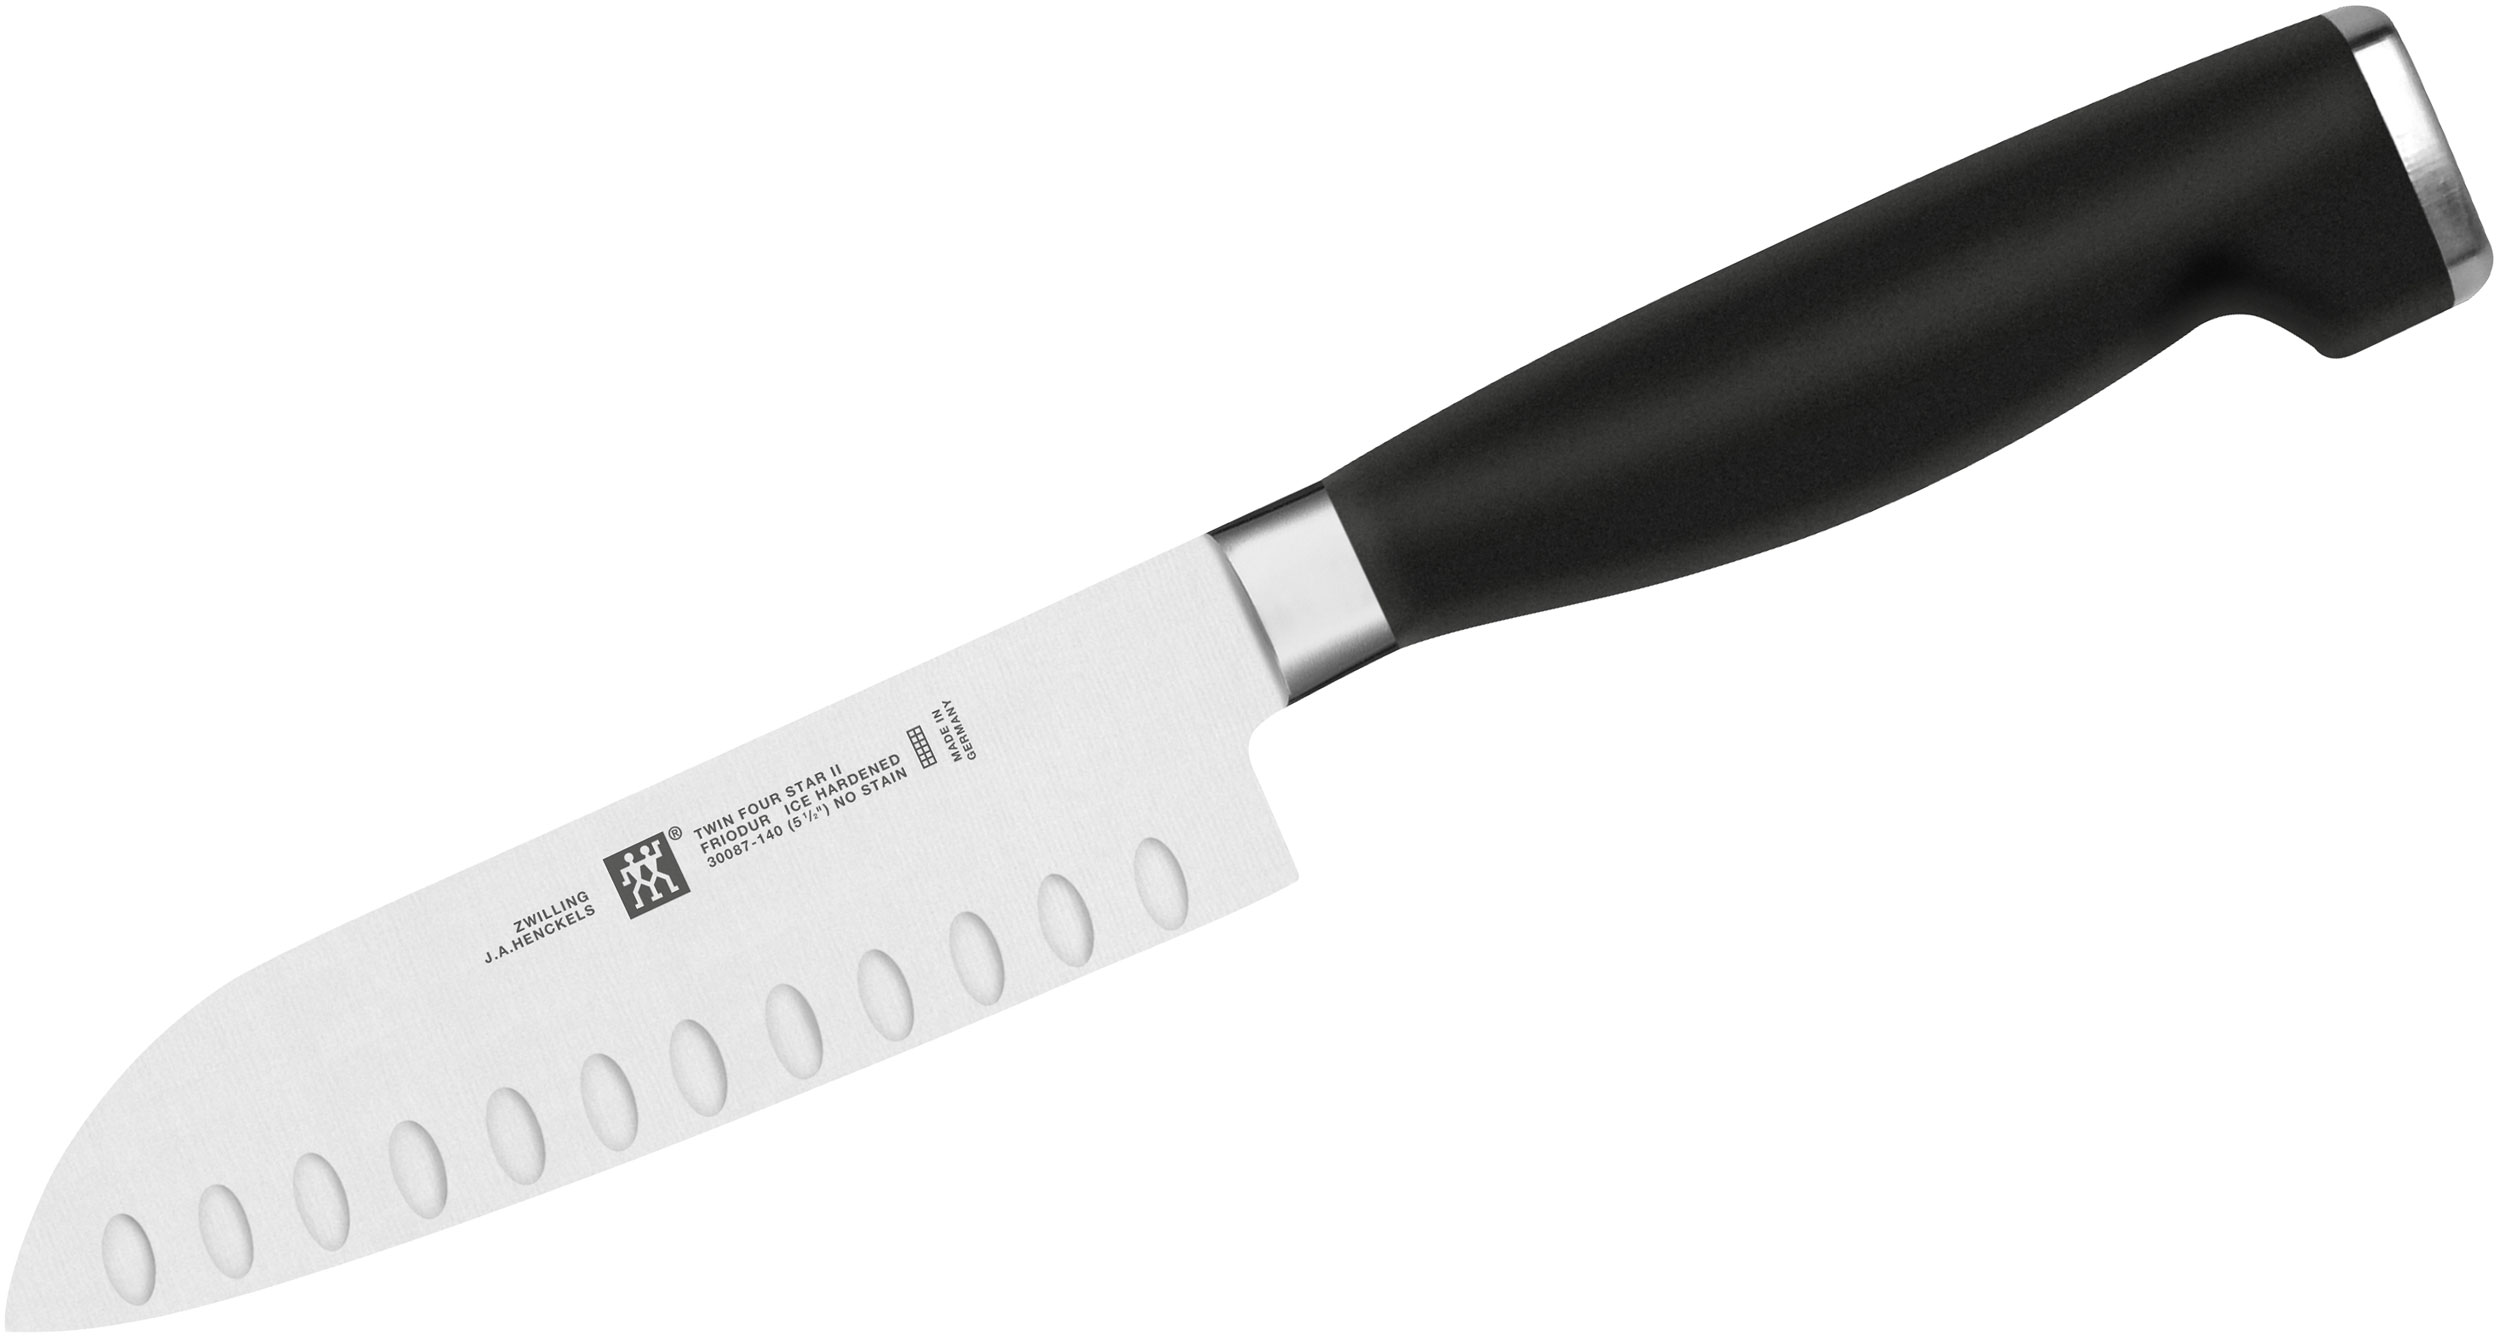 Zwilling J.A. Henckels TWIN Four Star II 5 inch Santoku Knife, Hollow Edge